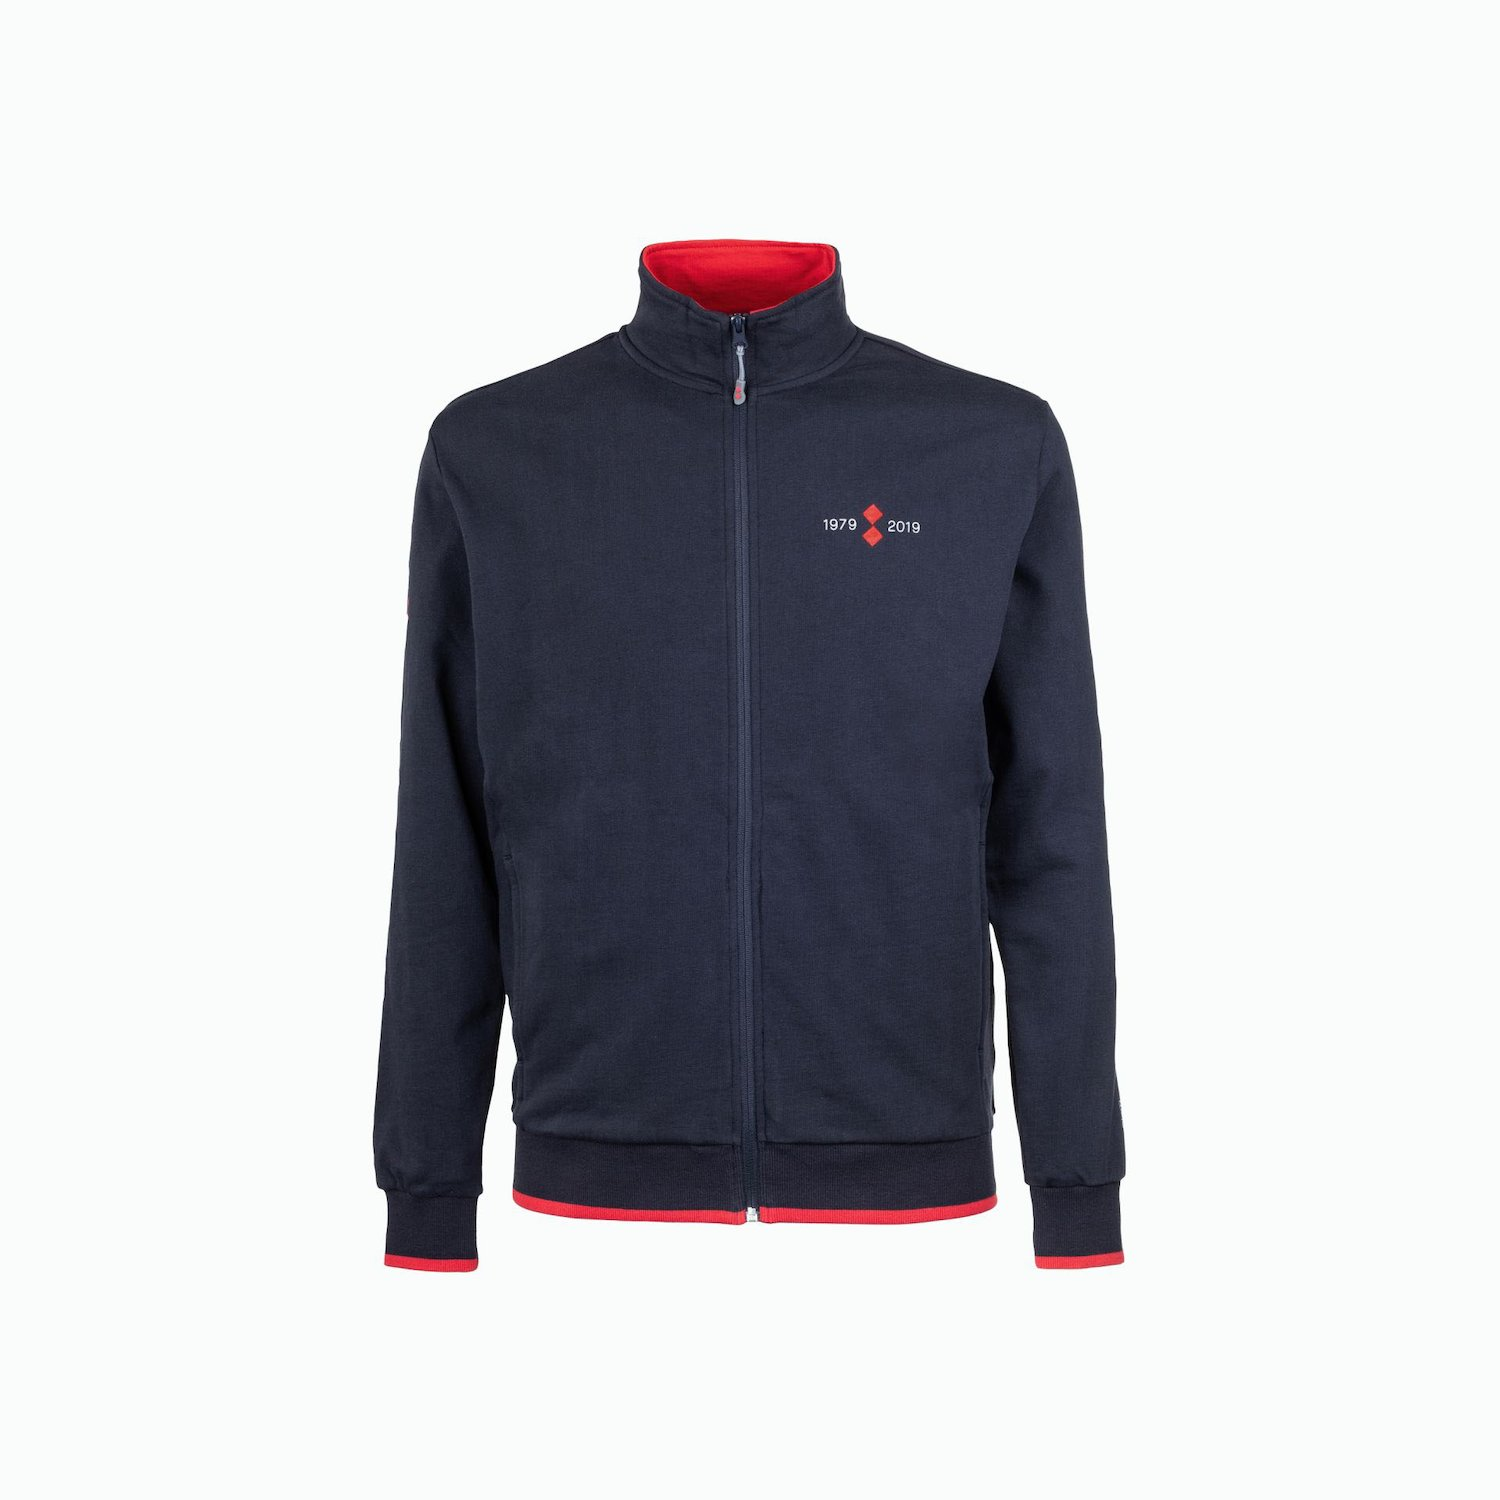 40th Sweatshirt - Navy